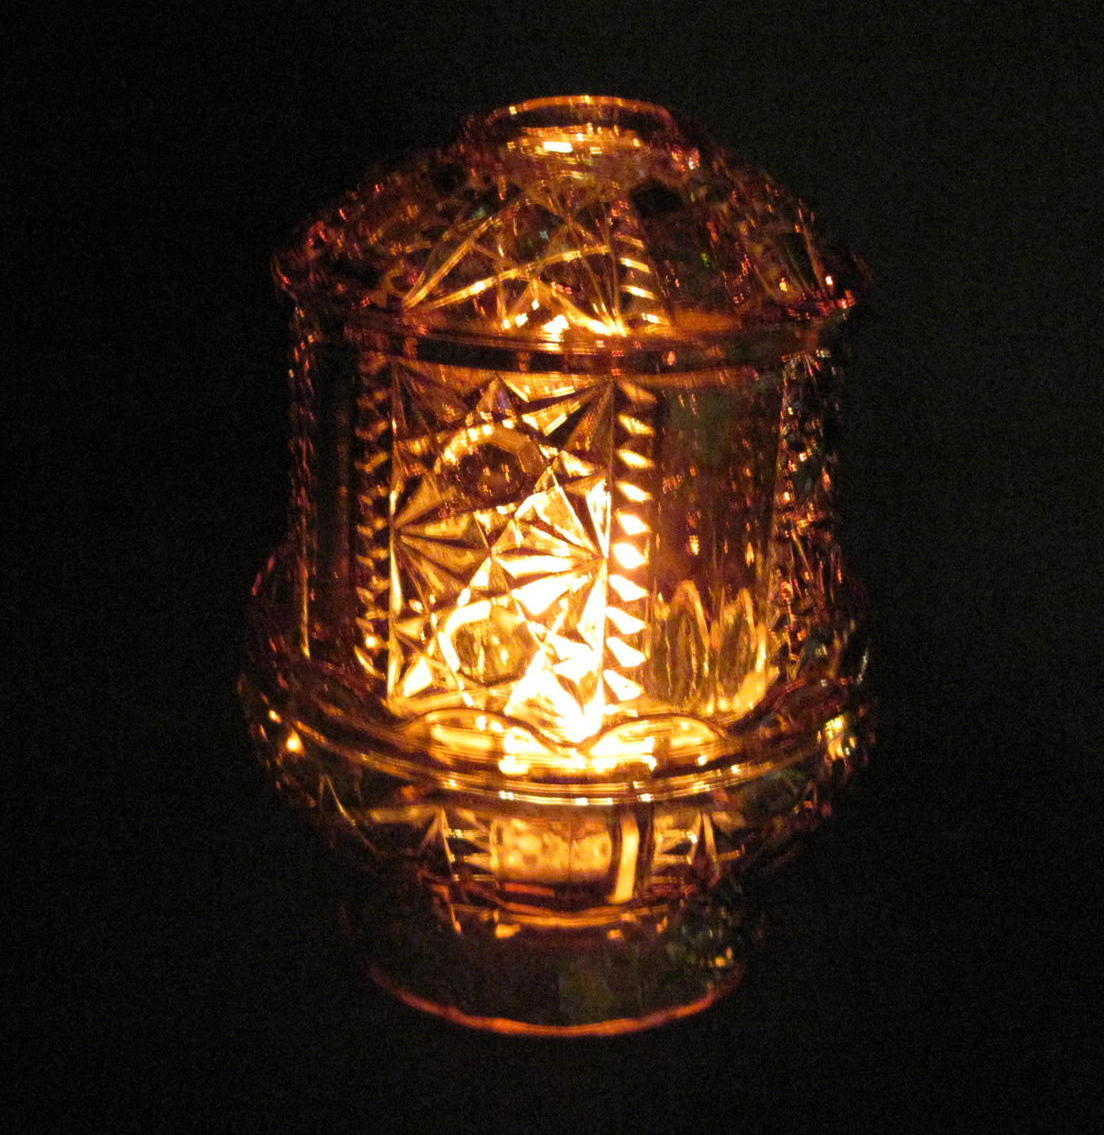 Home Interiors Amber Fairy Lamp Candle Holder Star Diamond Cut Lantern Candle Holders